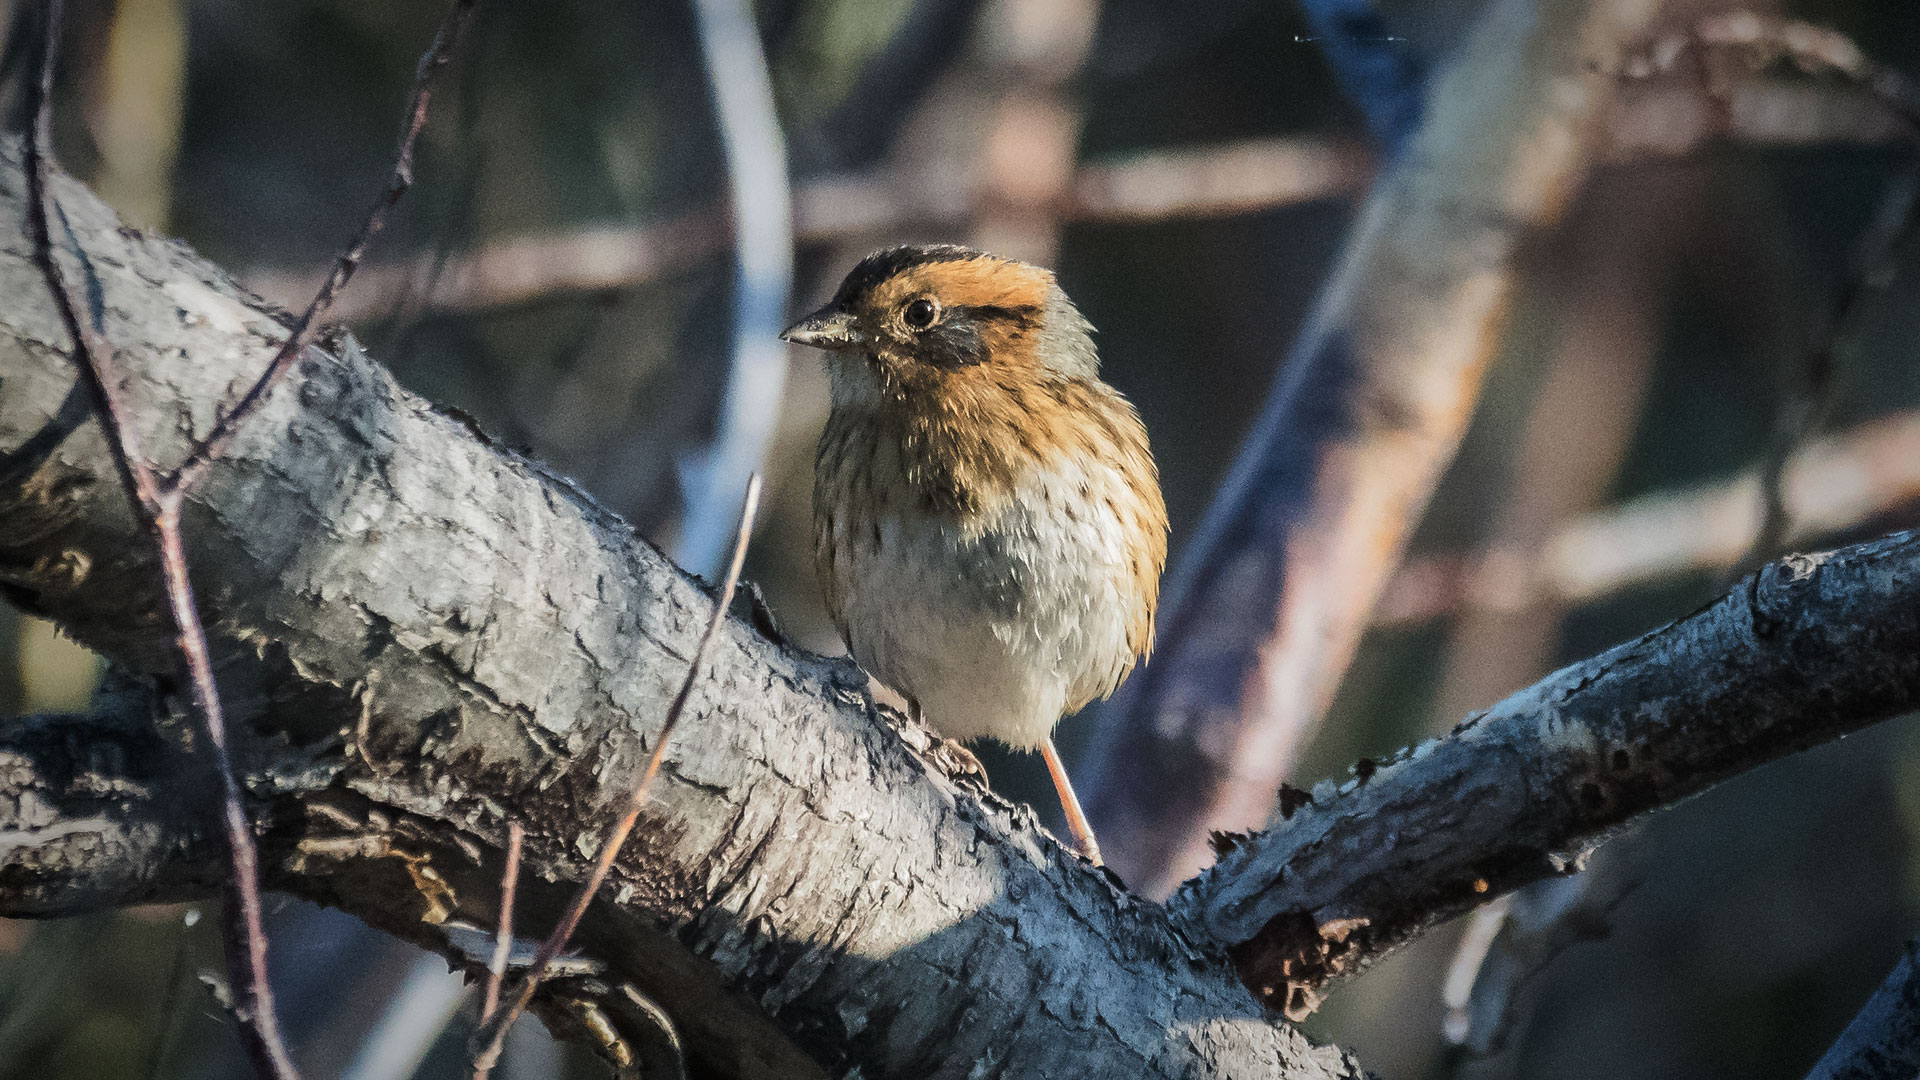 Nelson's Sparrow - Ammospiza nelsoni